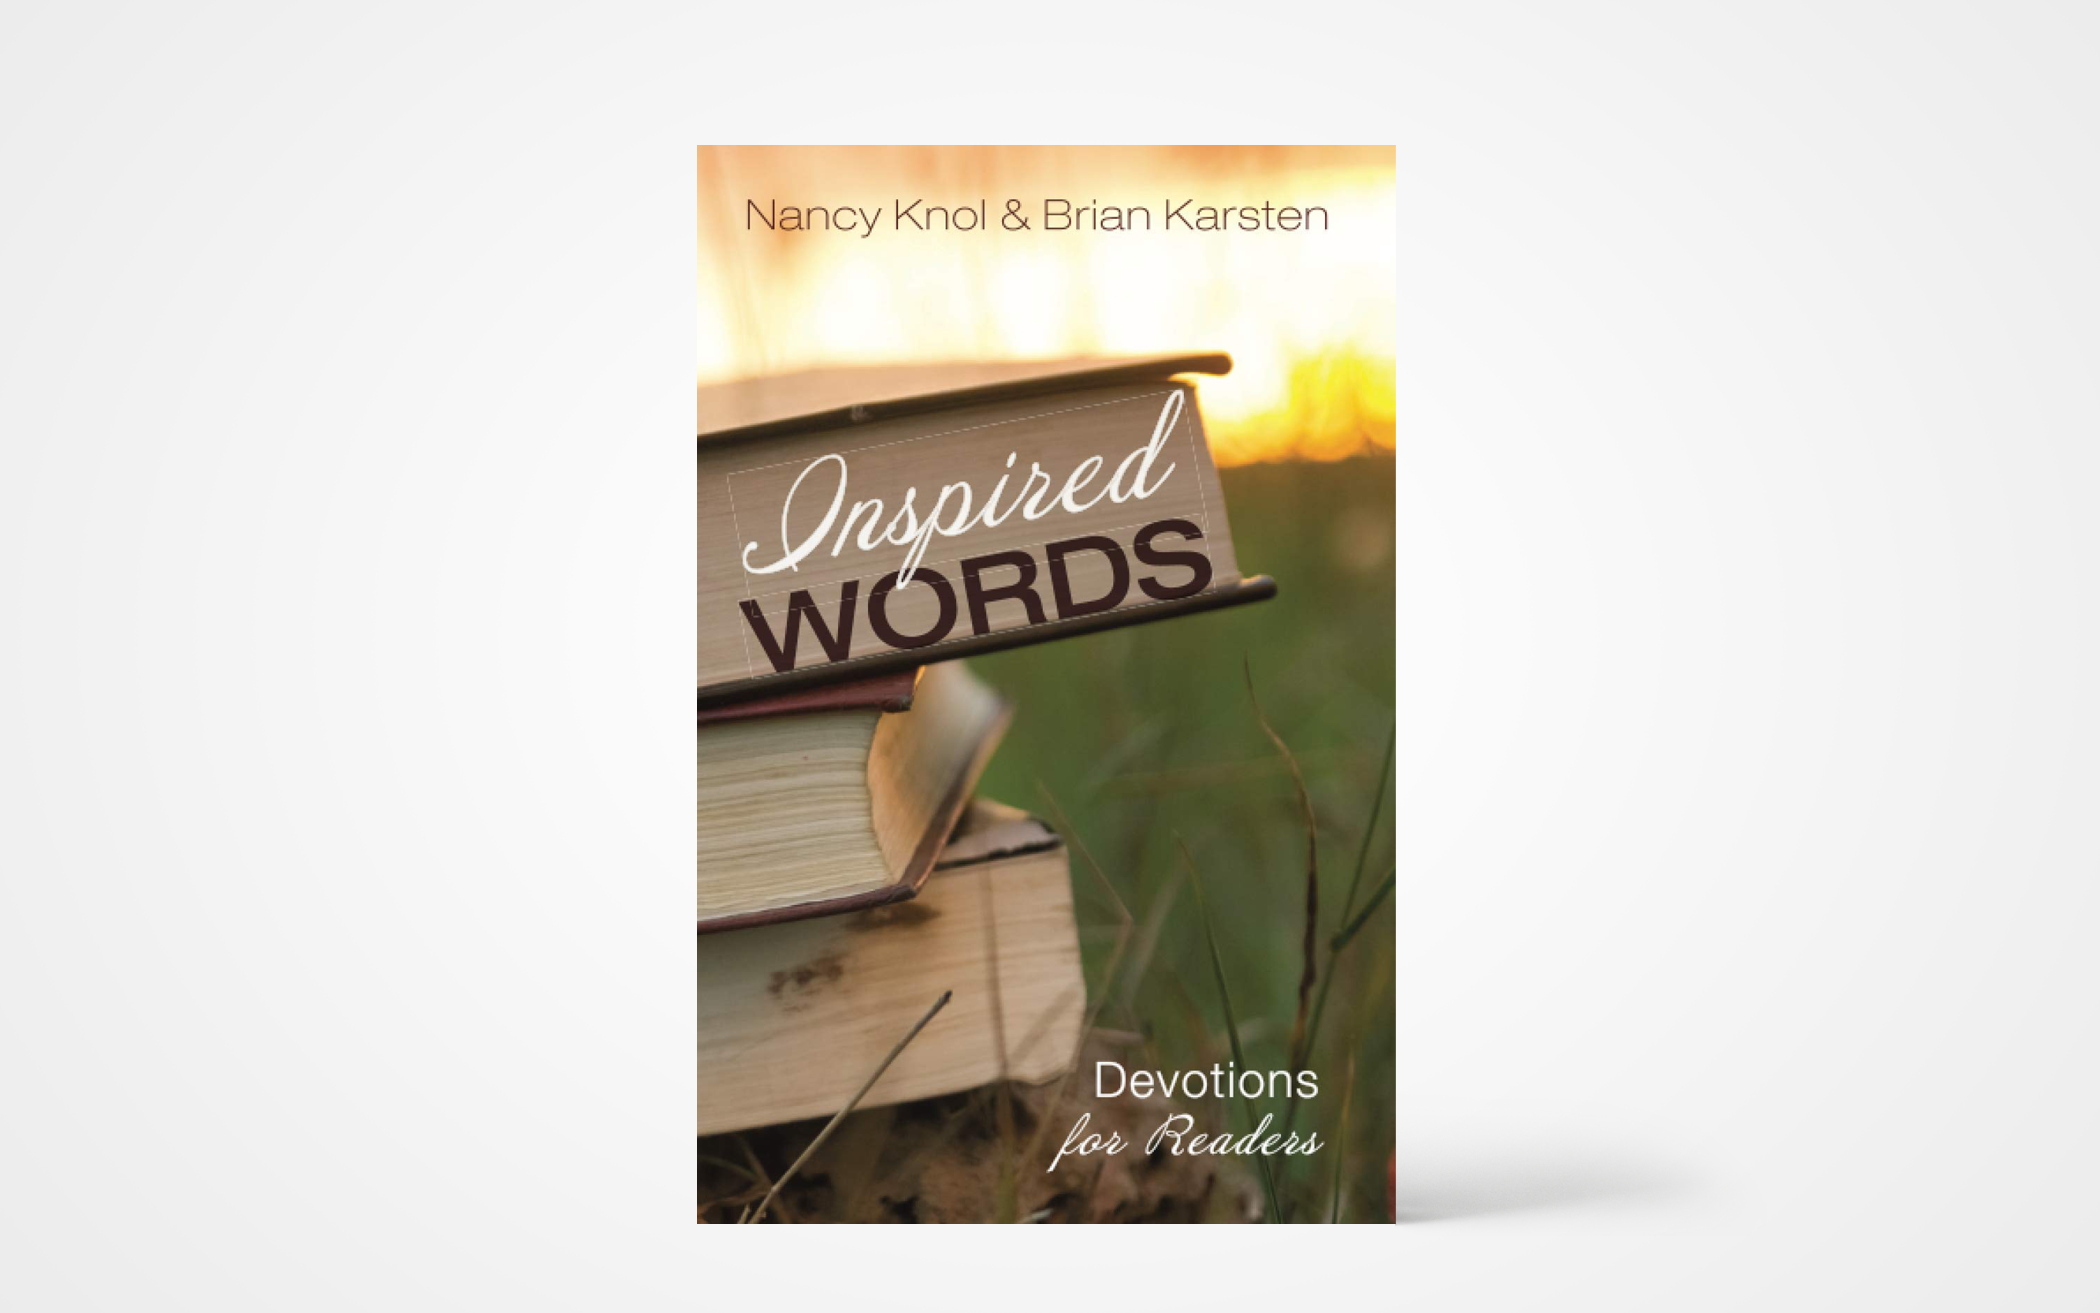 Inspired Words: Devotions for Readers